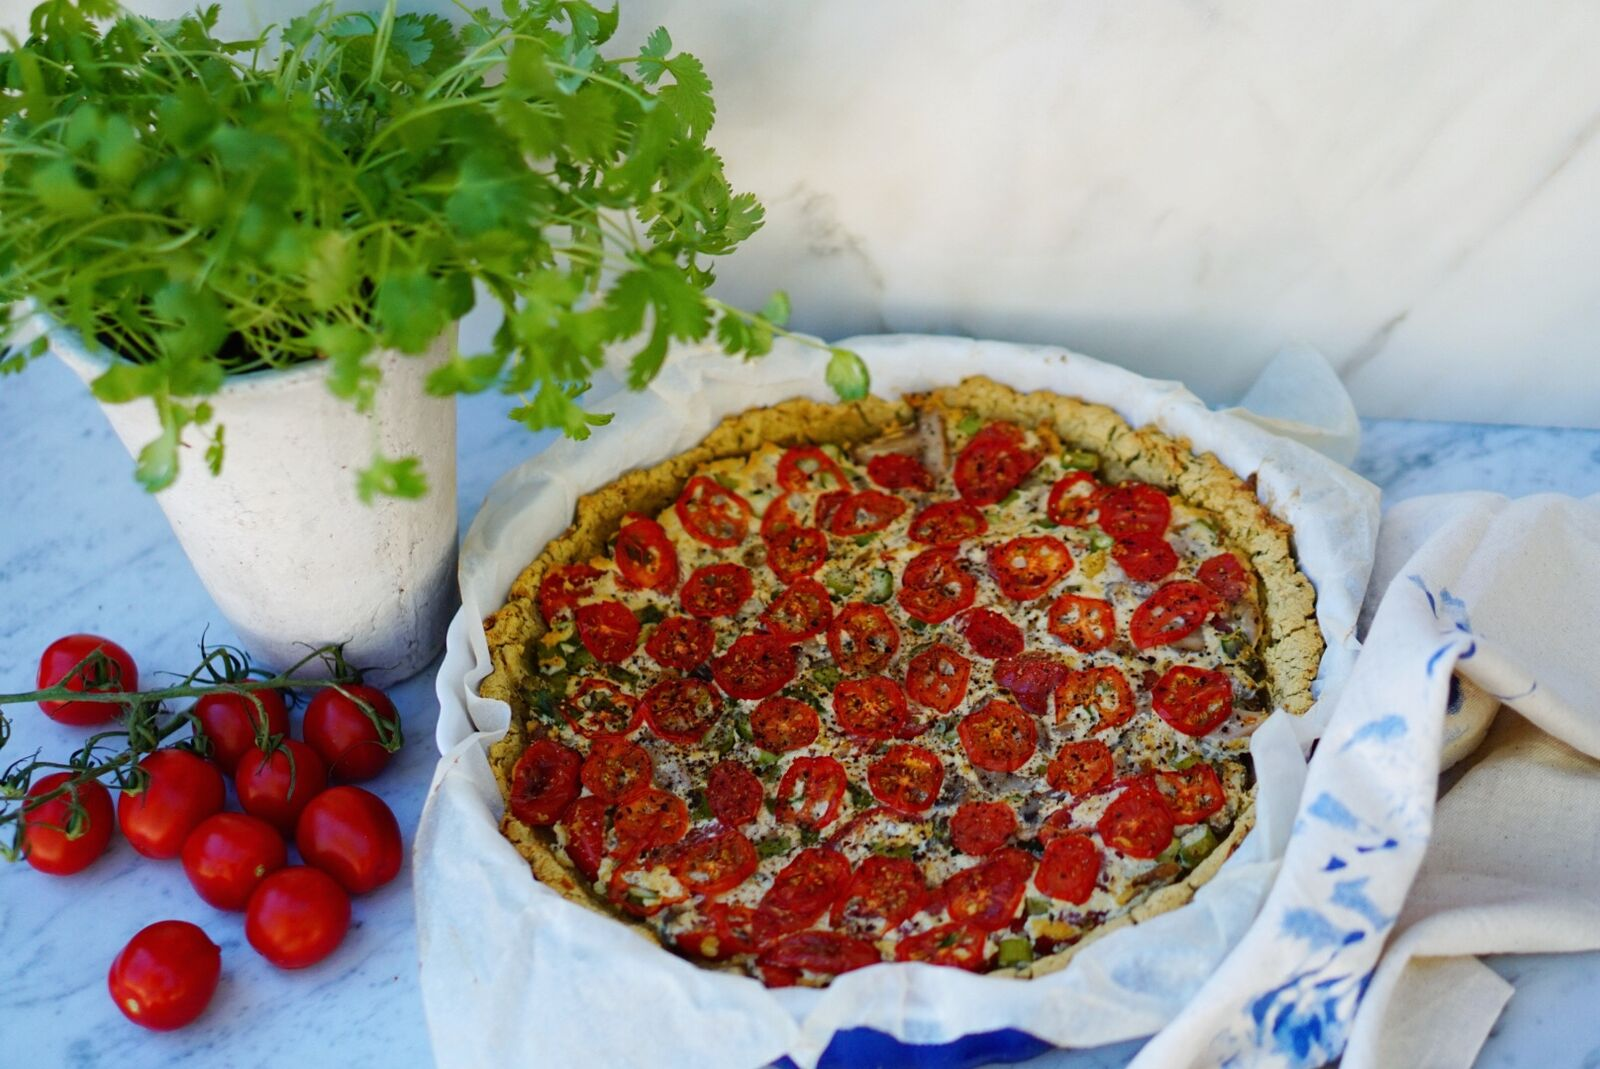 Lilo Ask-Henriksen's Simple Organic Quiche